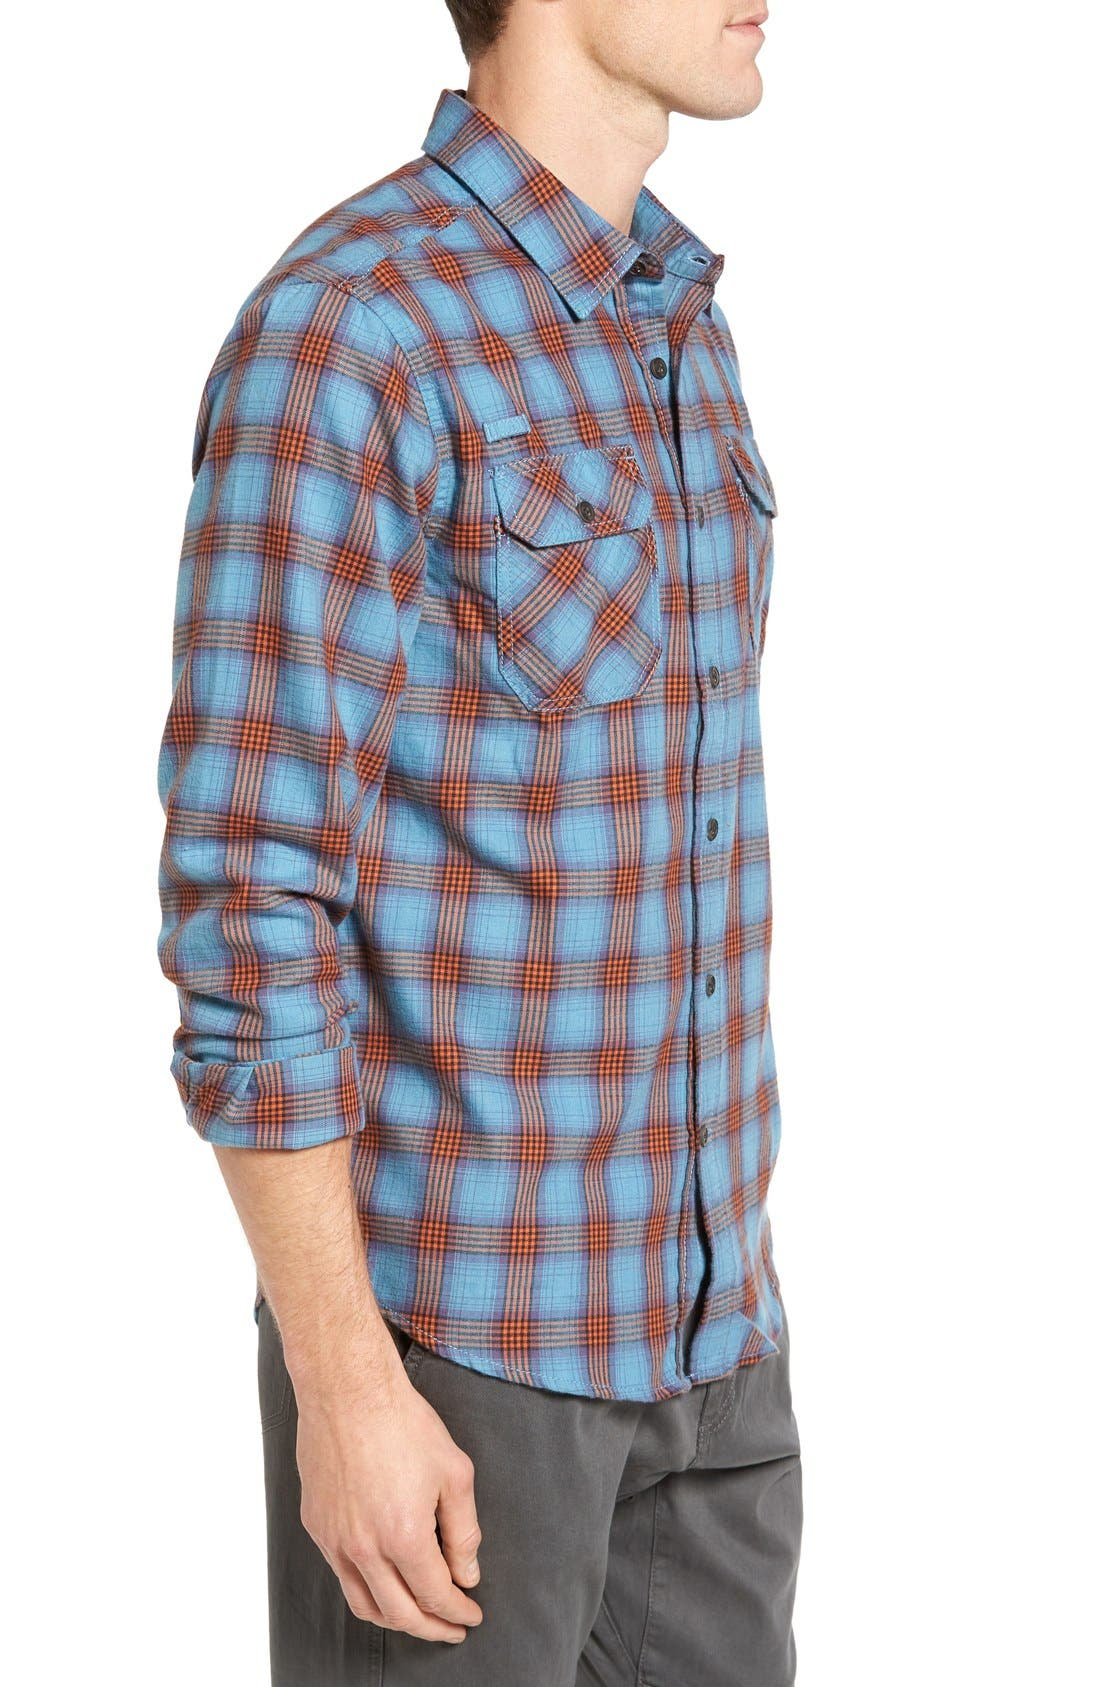 Burner Regular Fit Plaid Flannel Shirt,                             Alternate thumbnail 9, color,                             401